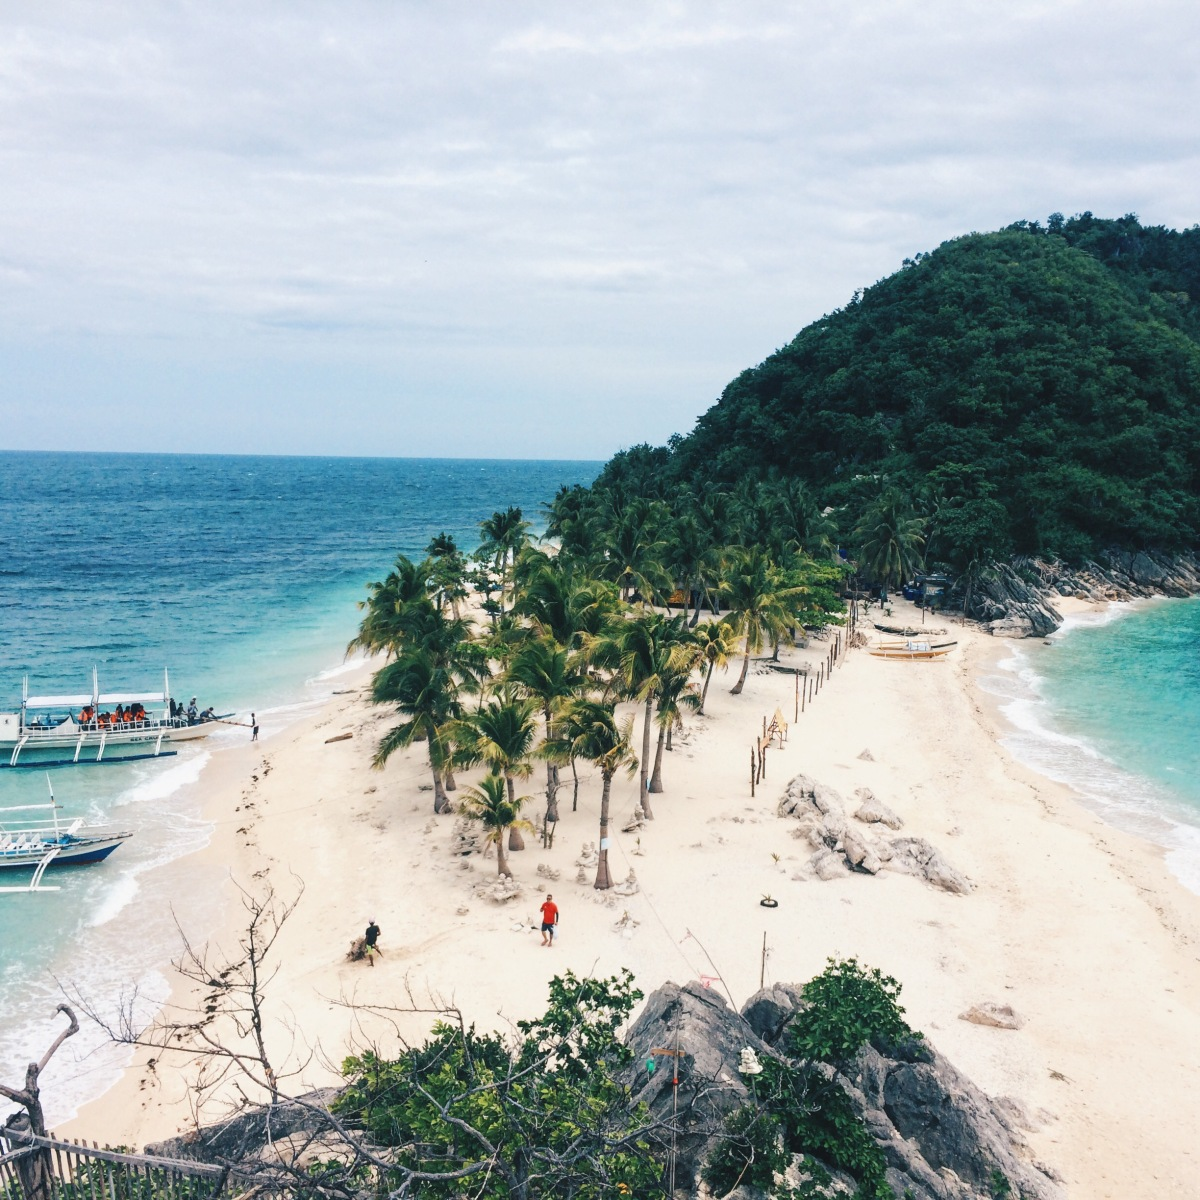 Islas De Gigantes Carles Iloilo: A DIY Travel Guide to the Island of Giants